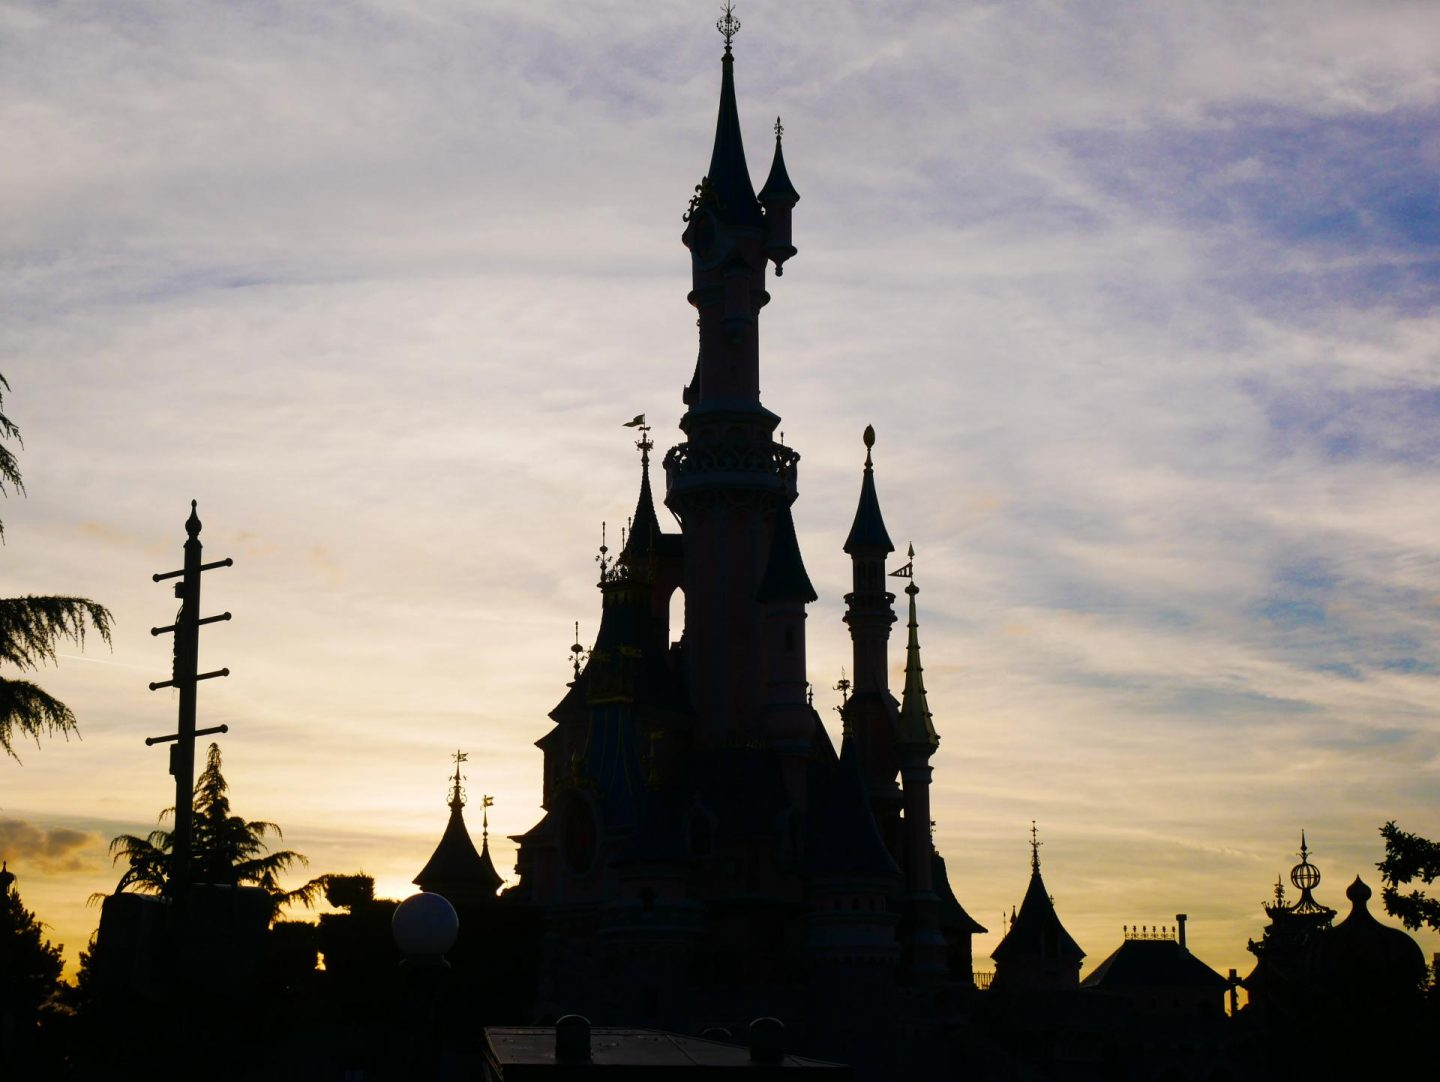 disneyland-paris-my-22nd-birthday-trip-rachel-nicole-uk-travel-disney-blogger-16